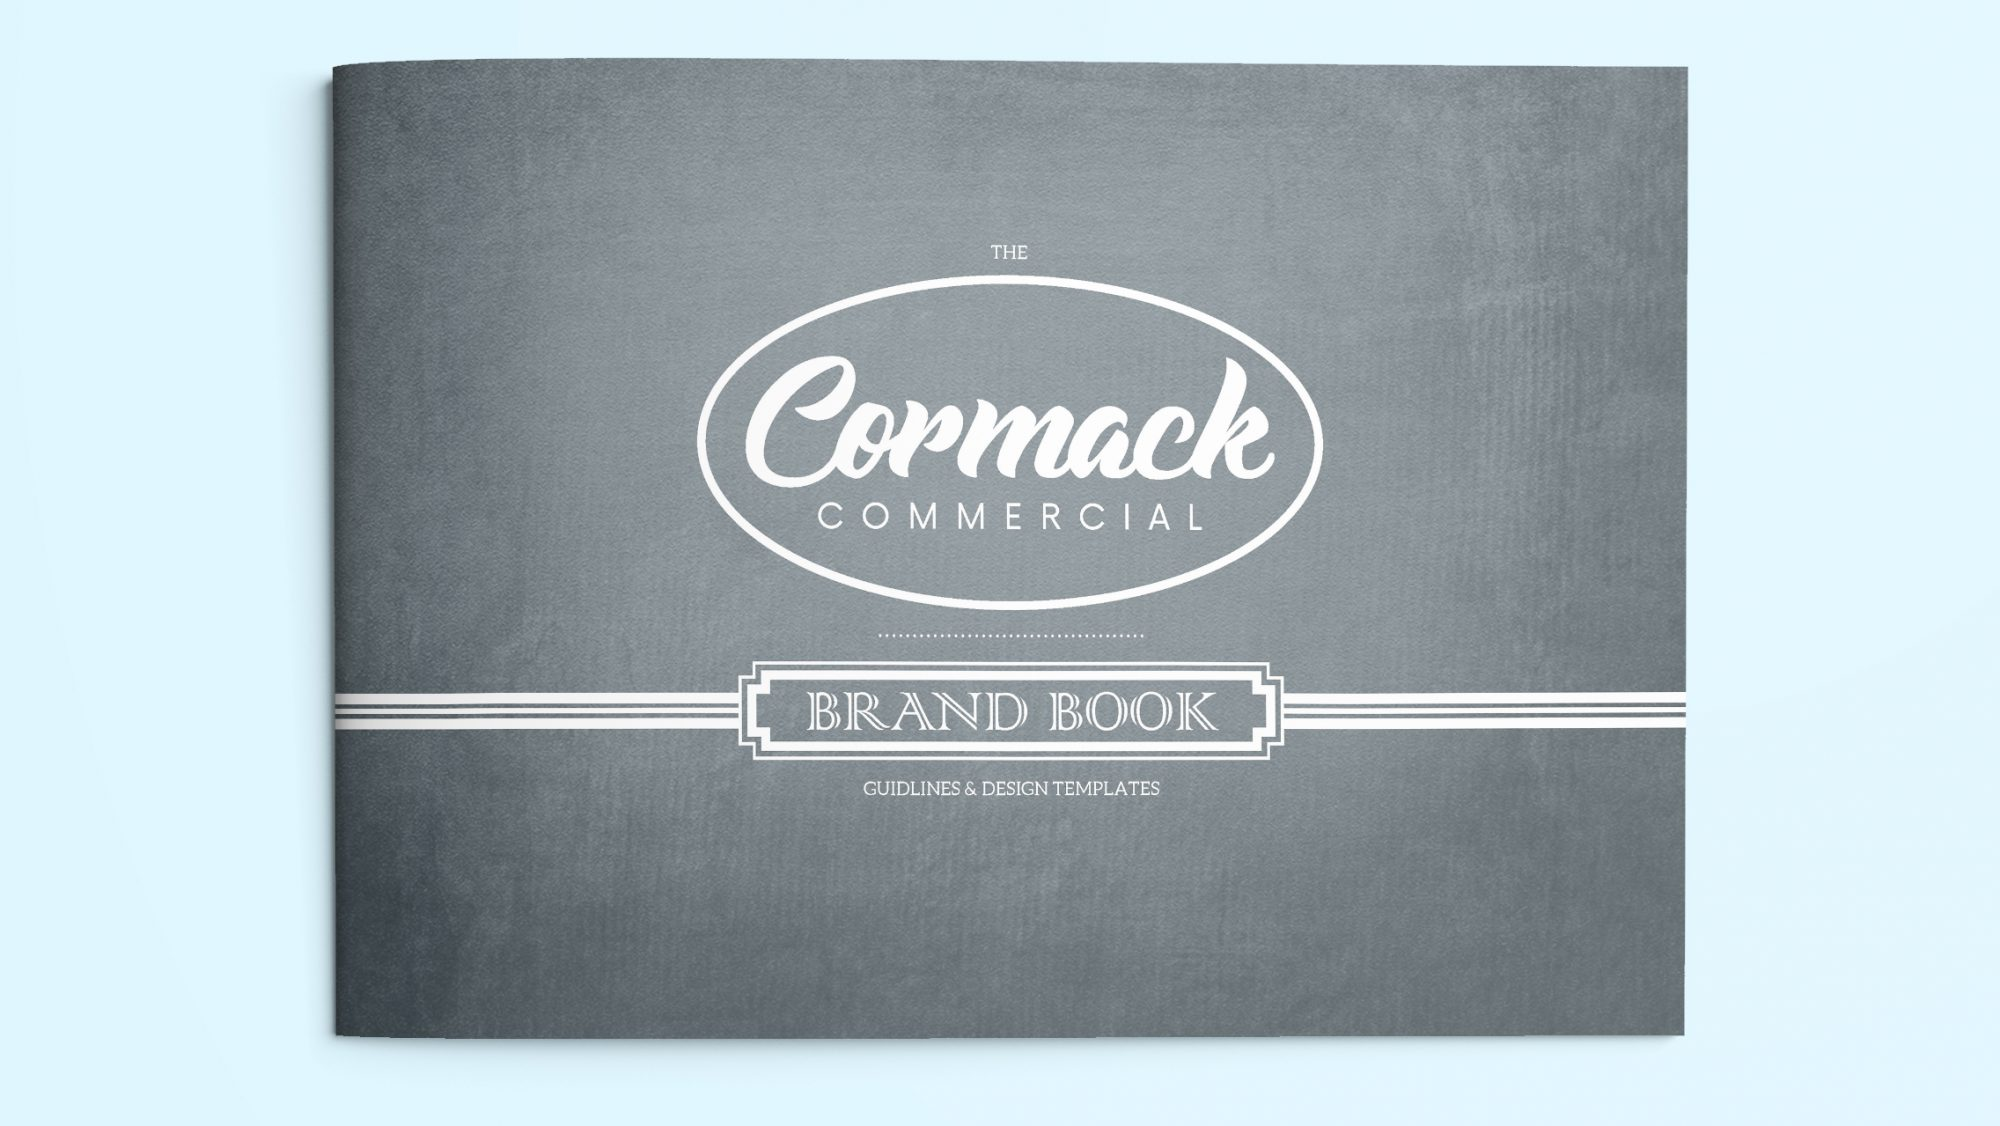 Cormack Commercial Brand Mockup 01 - Cormack Commercial Cleaning Up